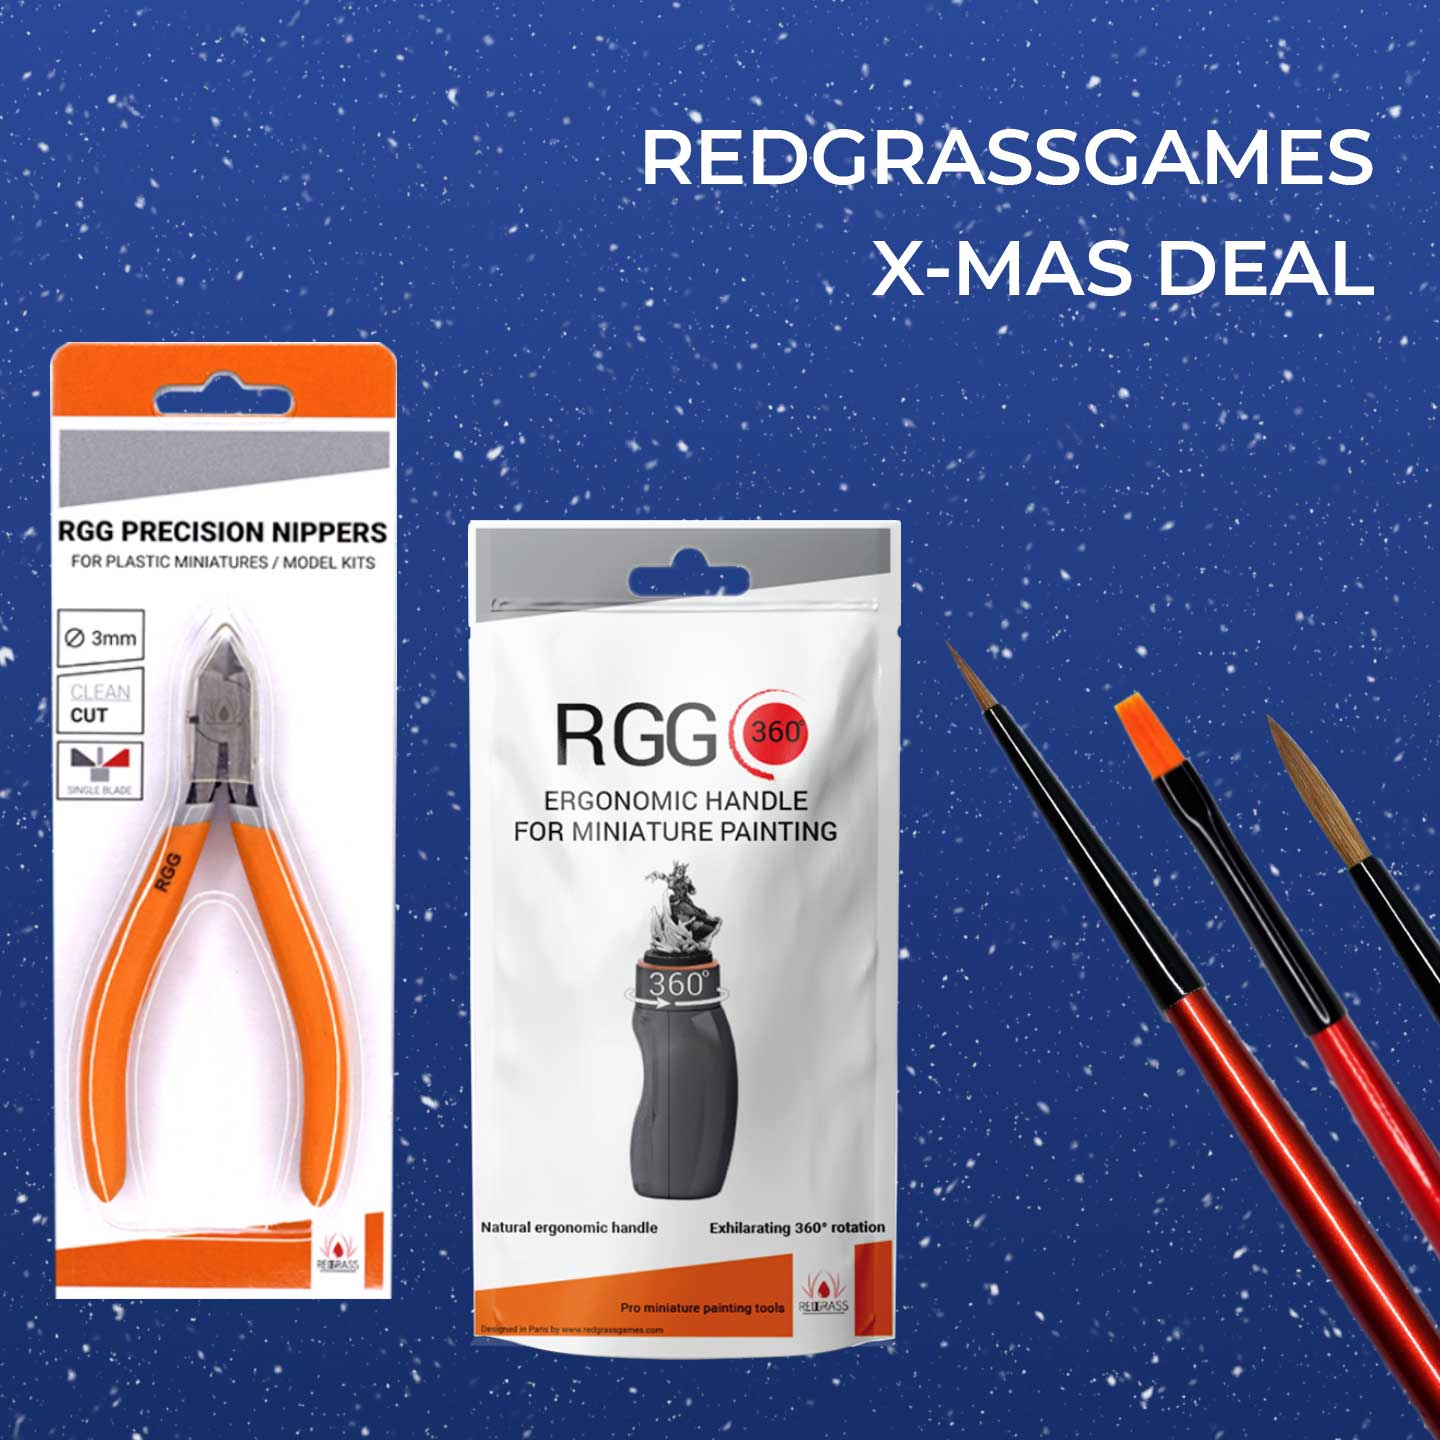 redgrassgames-painting-handle-nippers-brushes-christmas-deal-2020